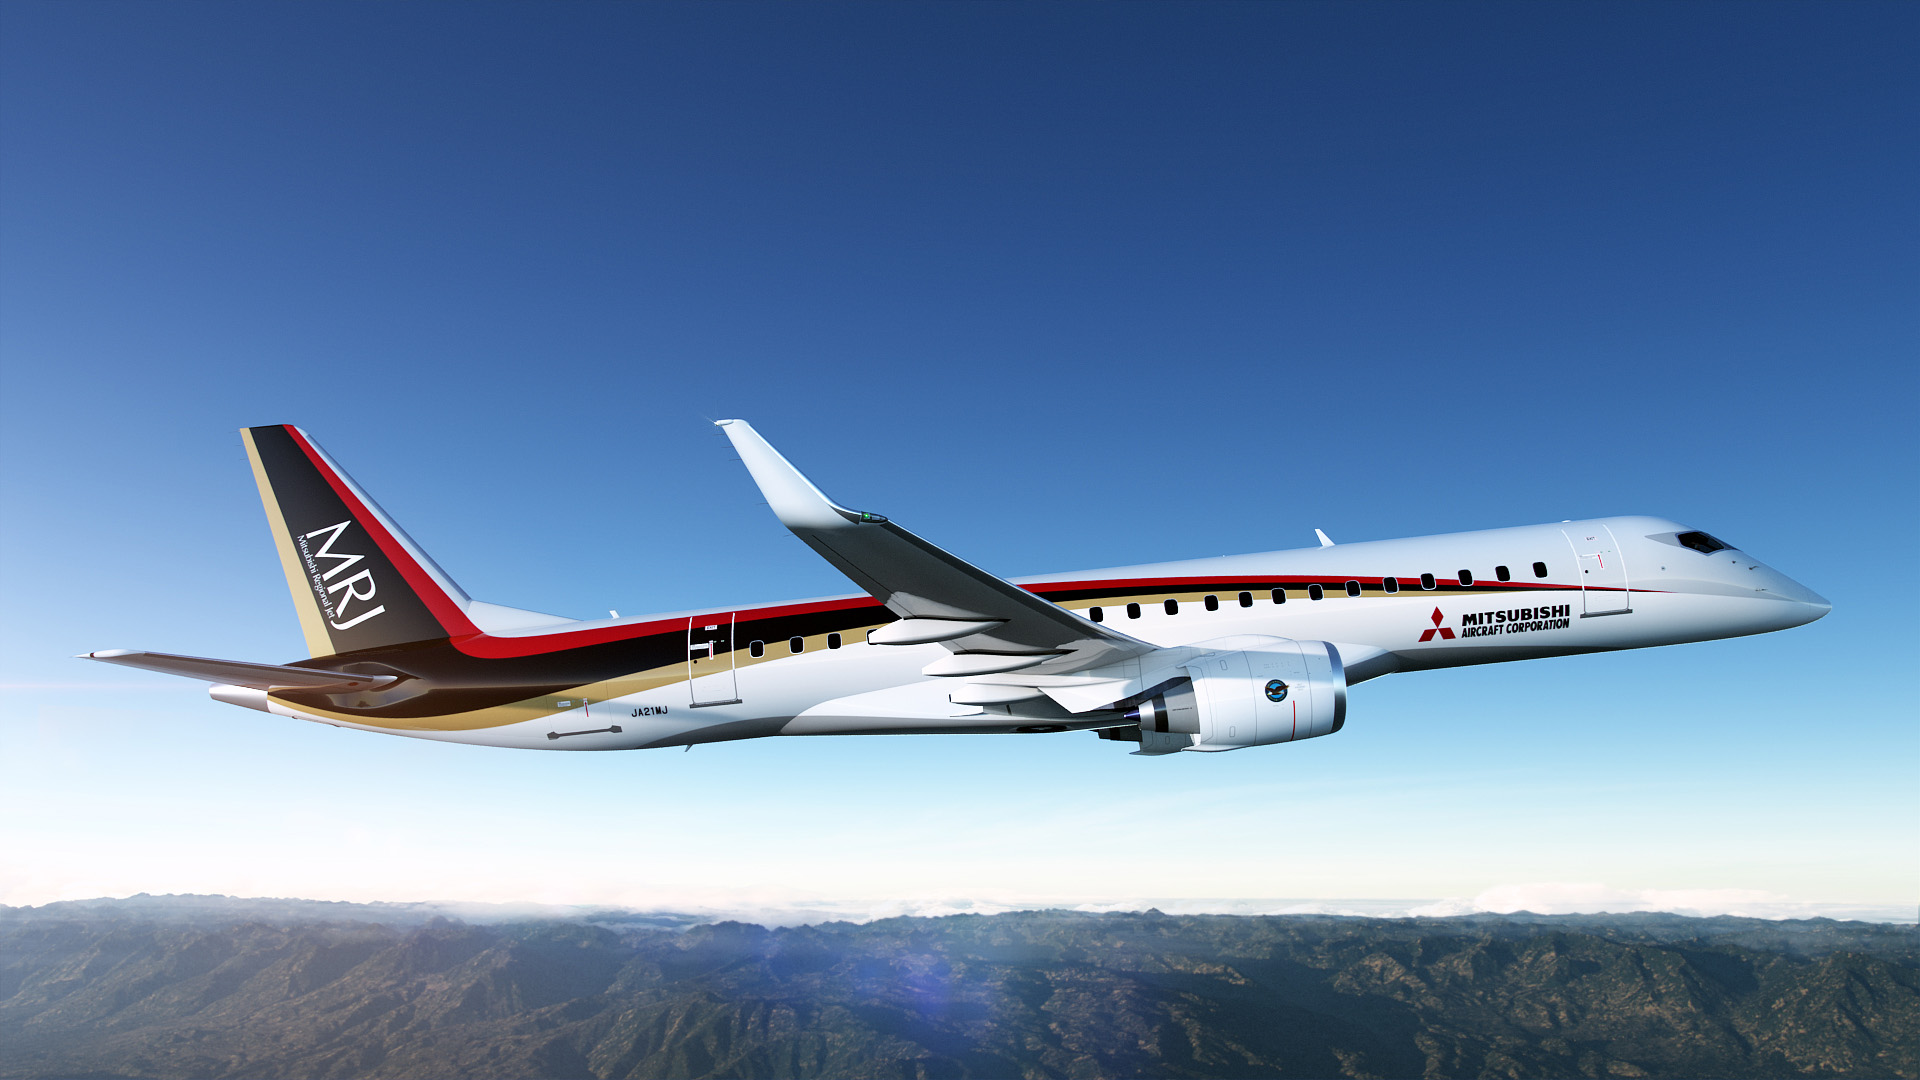 The MRJ design incorporates superior technology and passenger comfort. Engineered to achieve the lowest operational cost and lowest environmental impact. Better for passengers, the environment and airlines, the MRJ will change the way you fly.